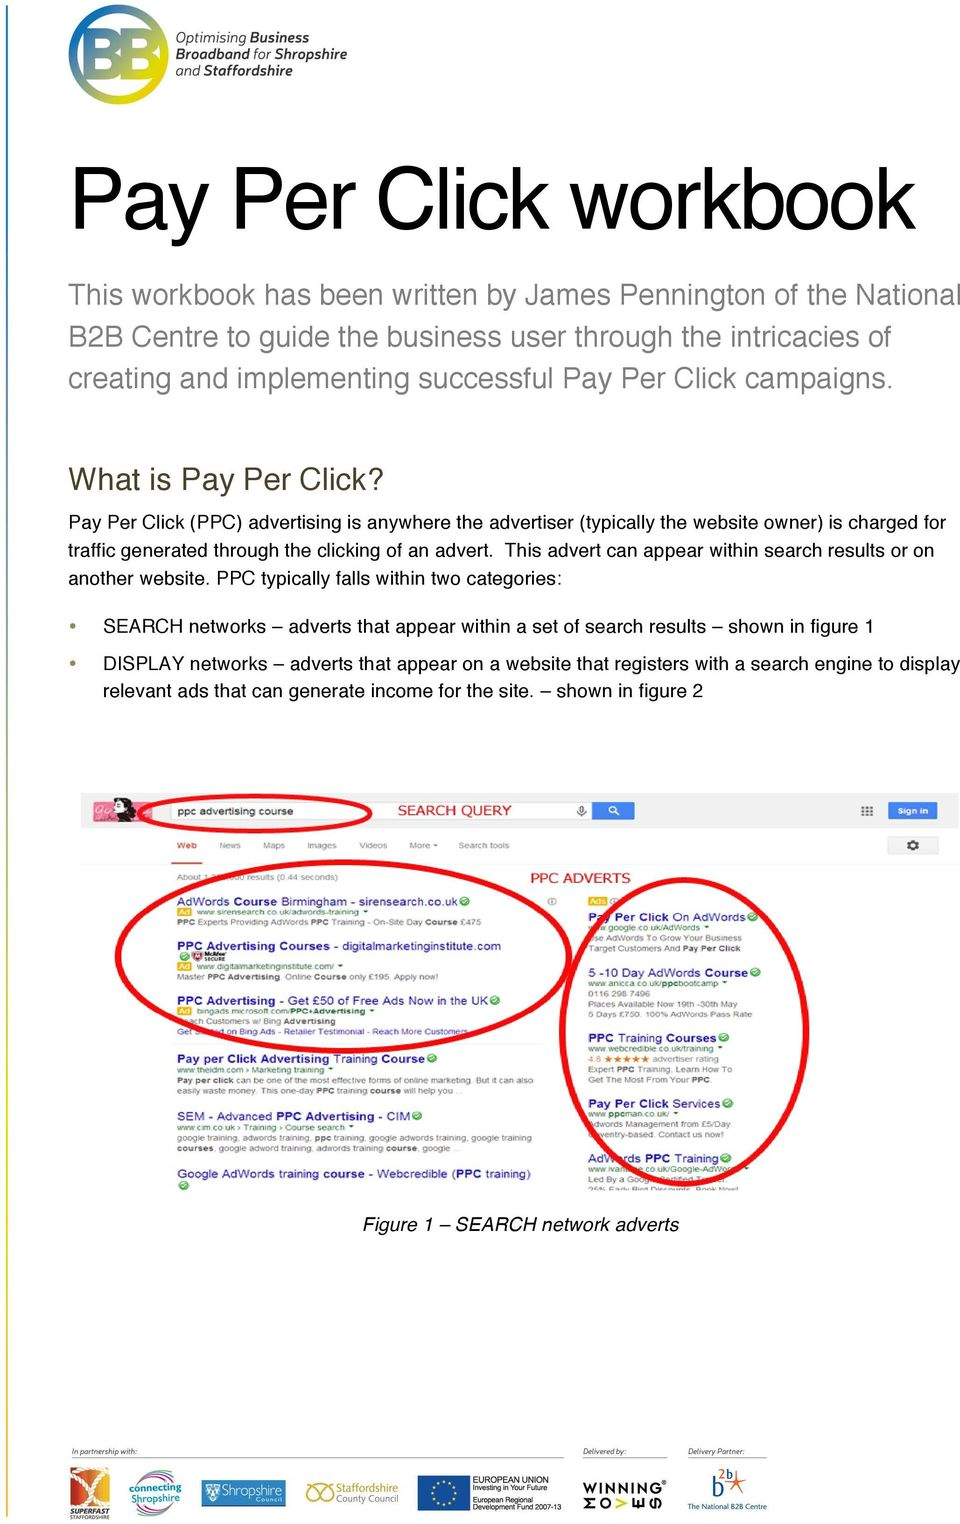 Pay Per Click (PPC) advertising is anywhere the advertiser (typically the website owner) is charged for traffic generated through the clicking of an advert.